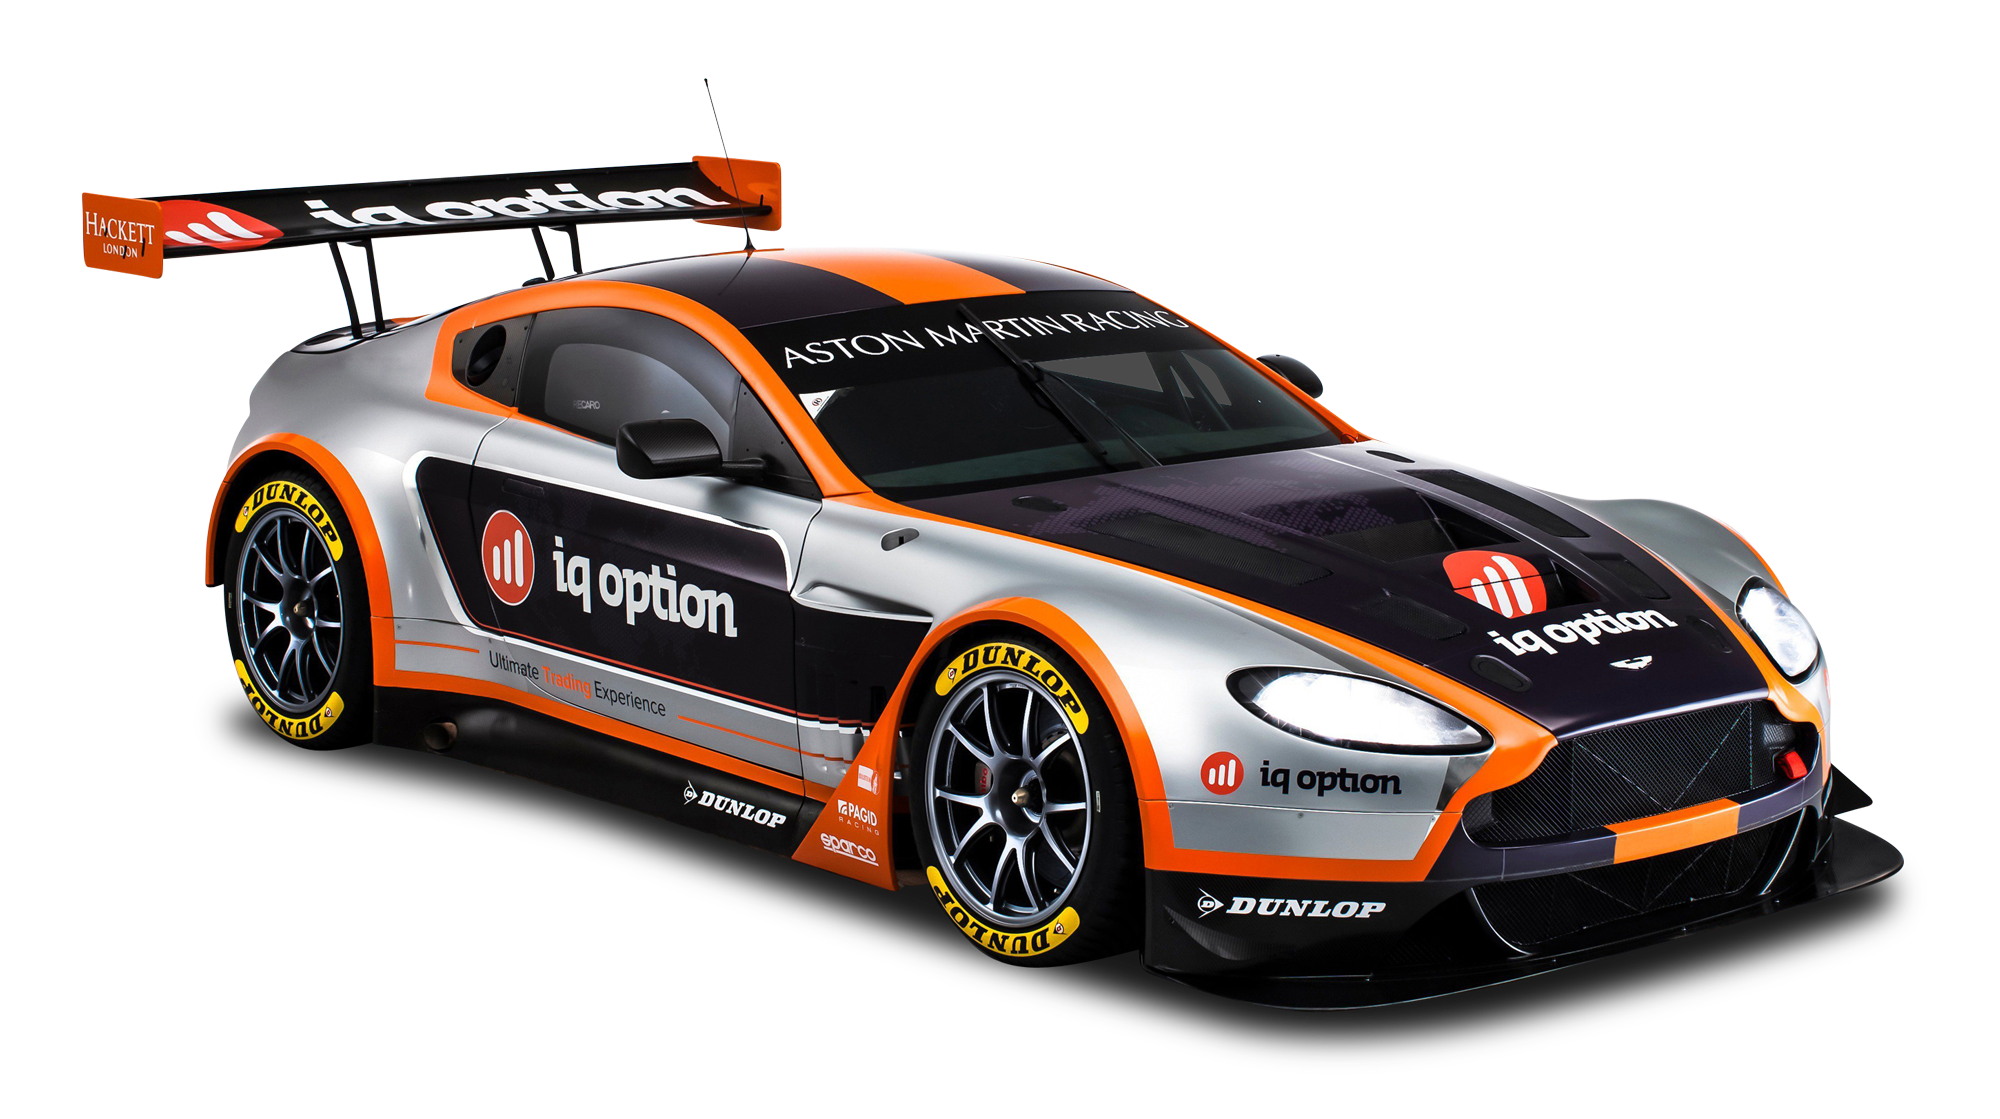 Race clipart racing background. Black aston martin car